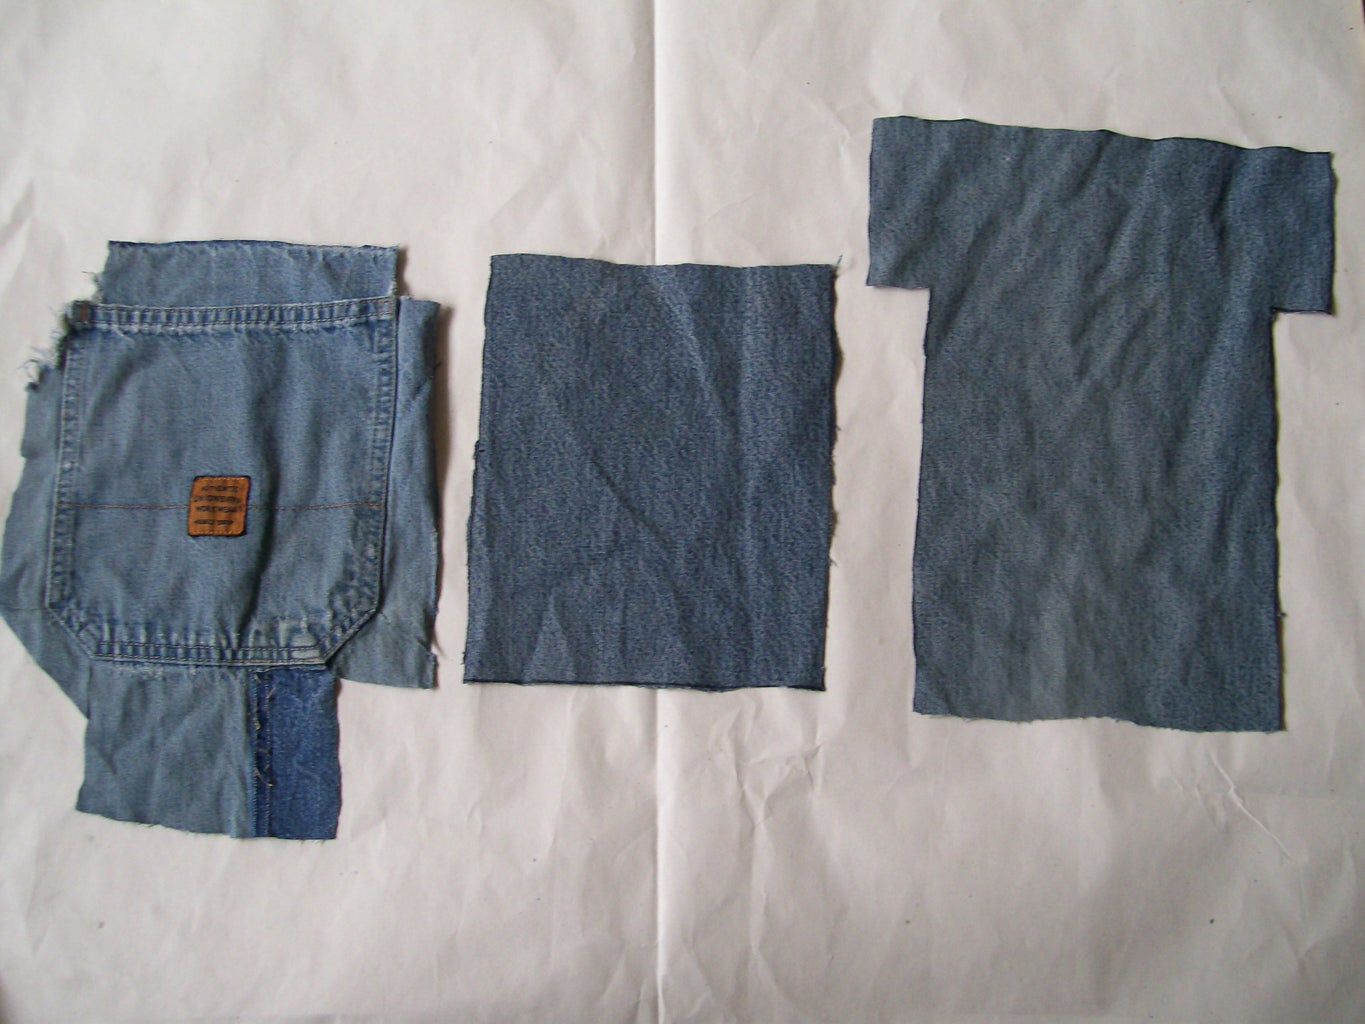 Cutting the Jeans